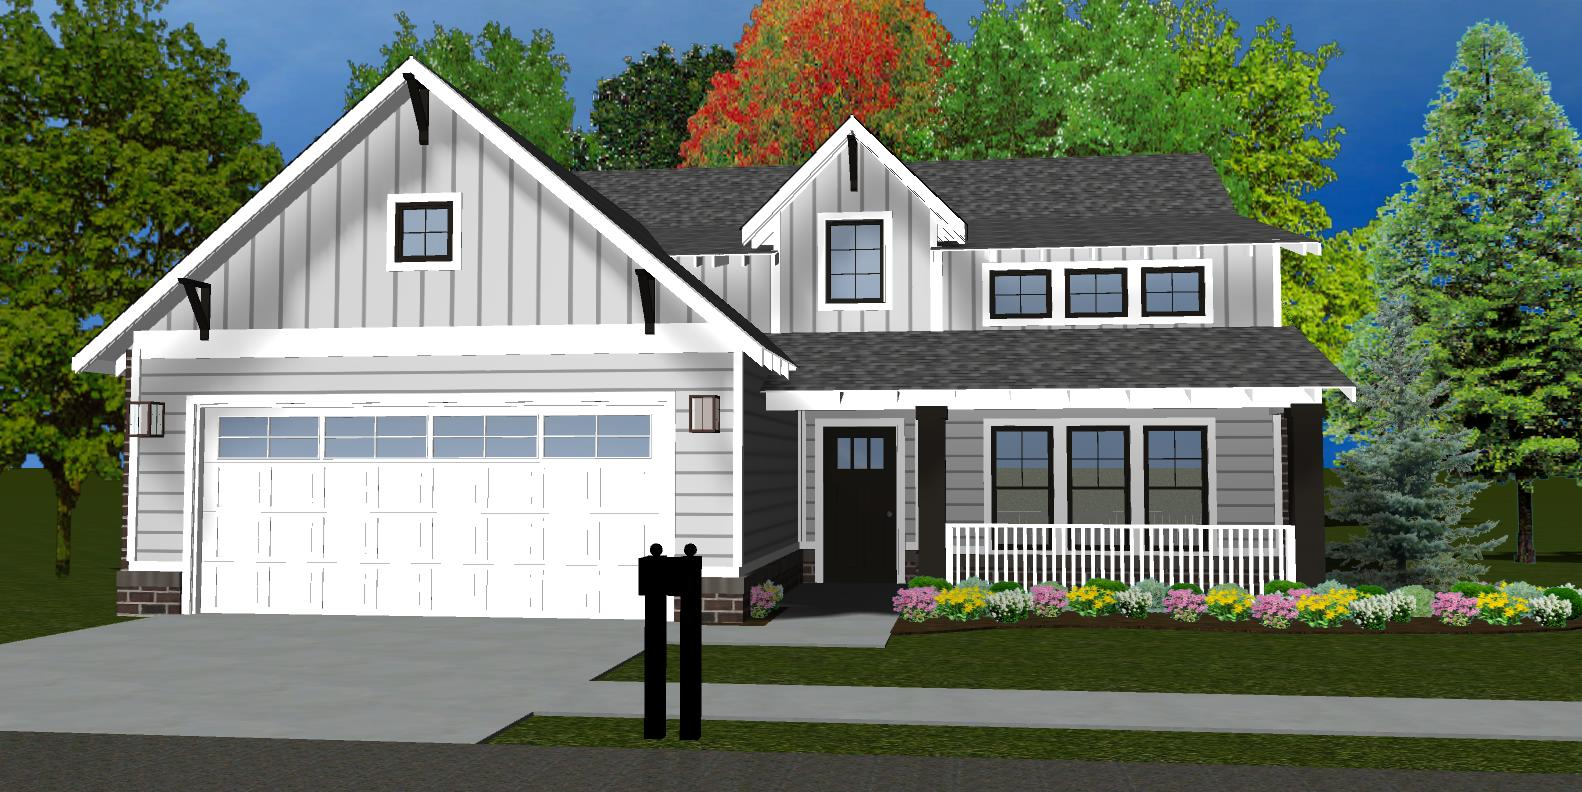 Cooper Farmhouse Rendering.jpg